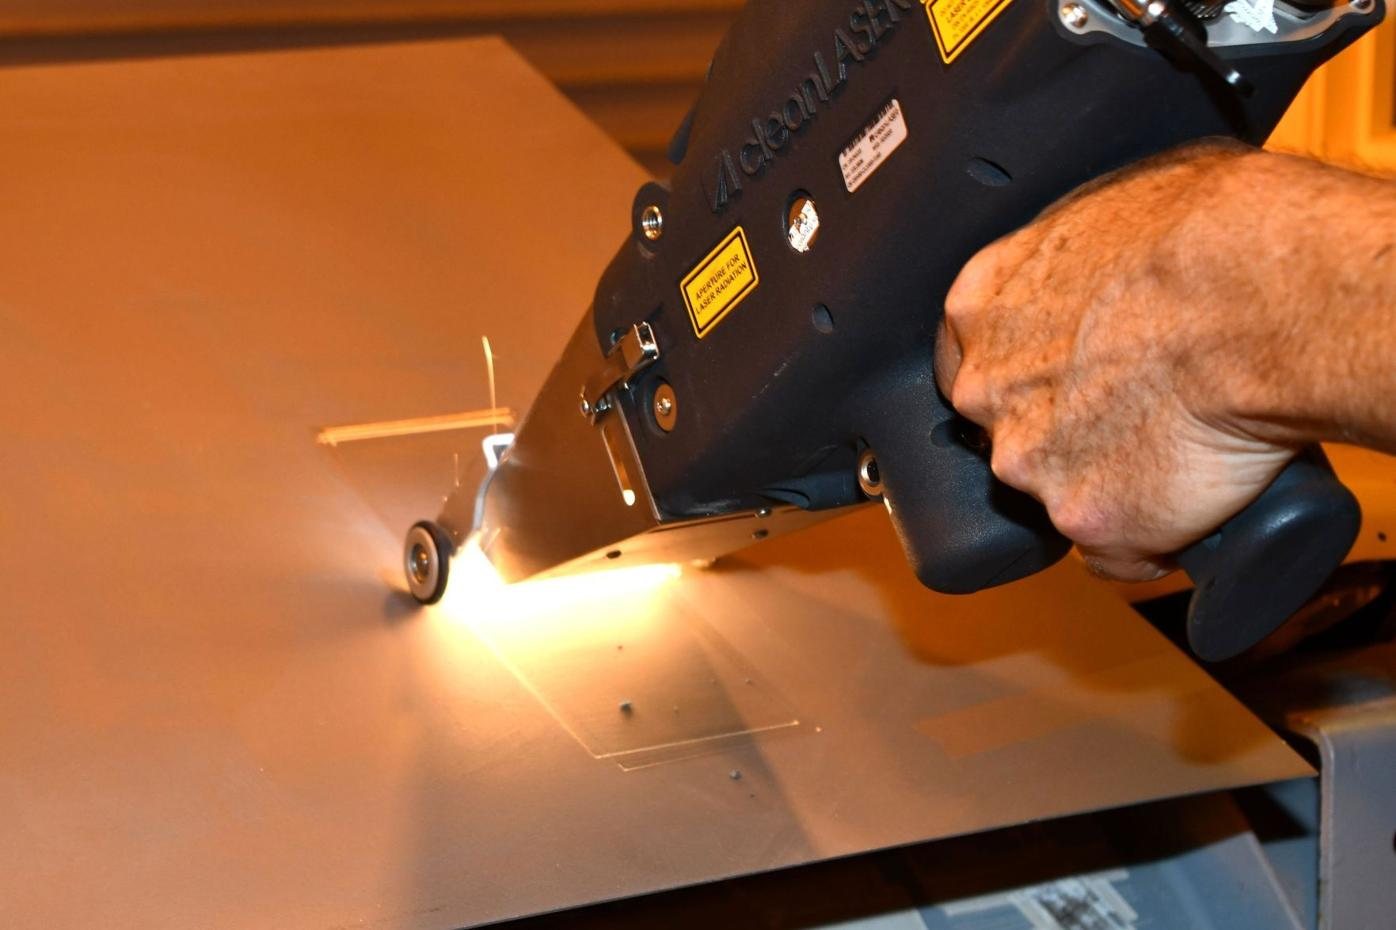 FRCE explores new laser technology to remove corrosion, coatings